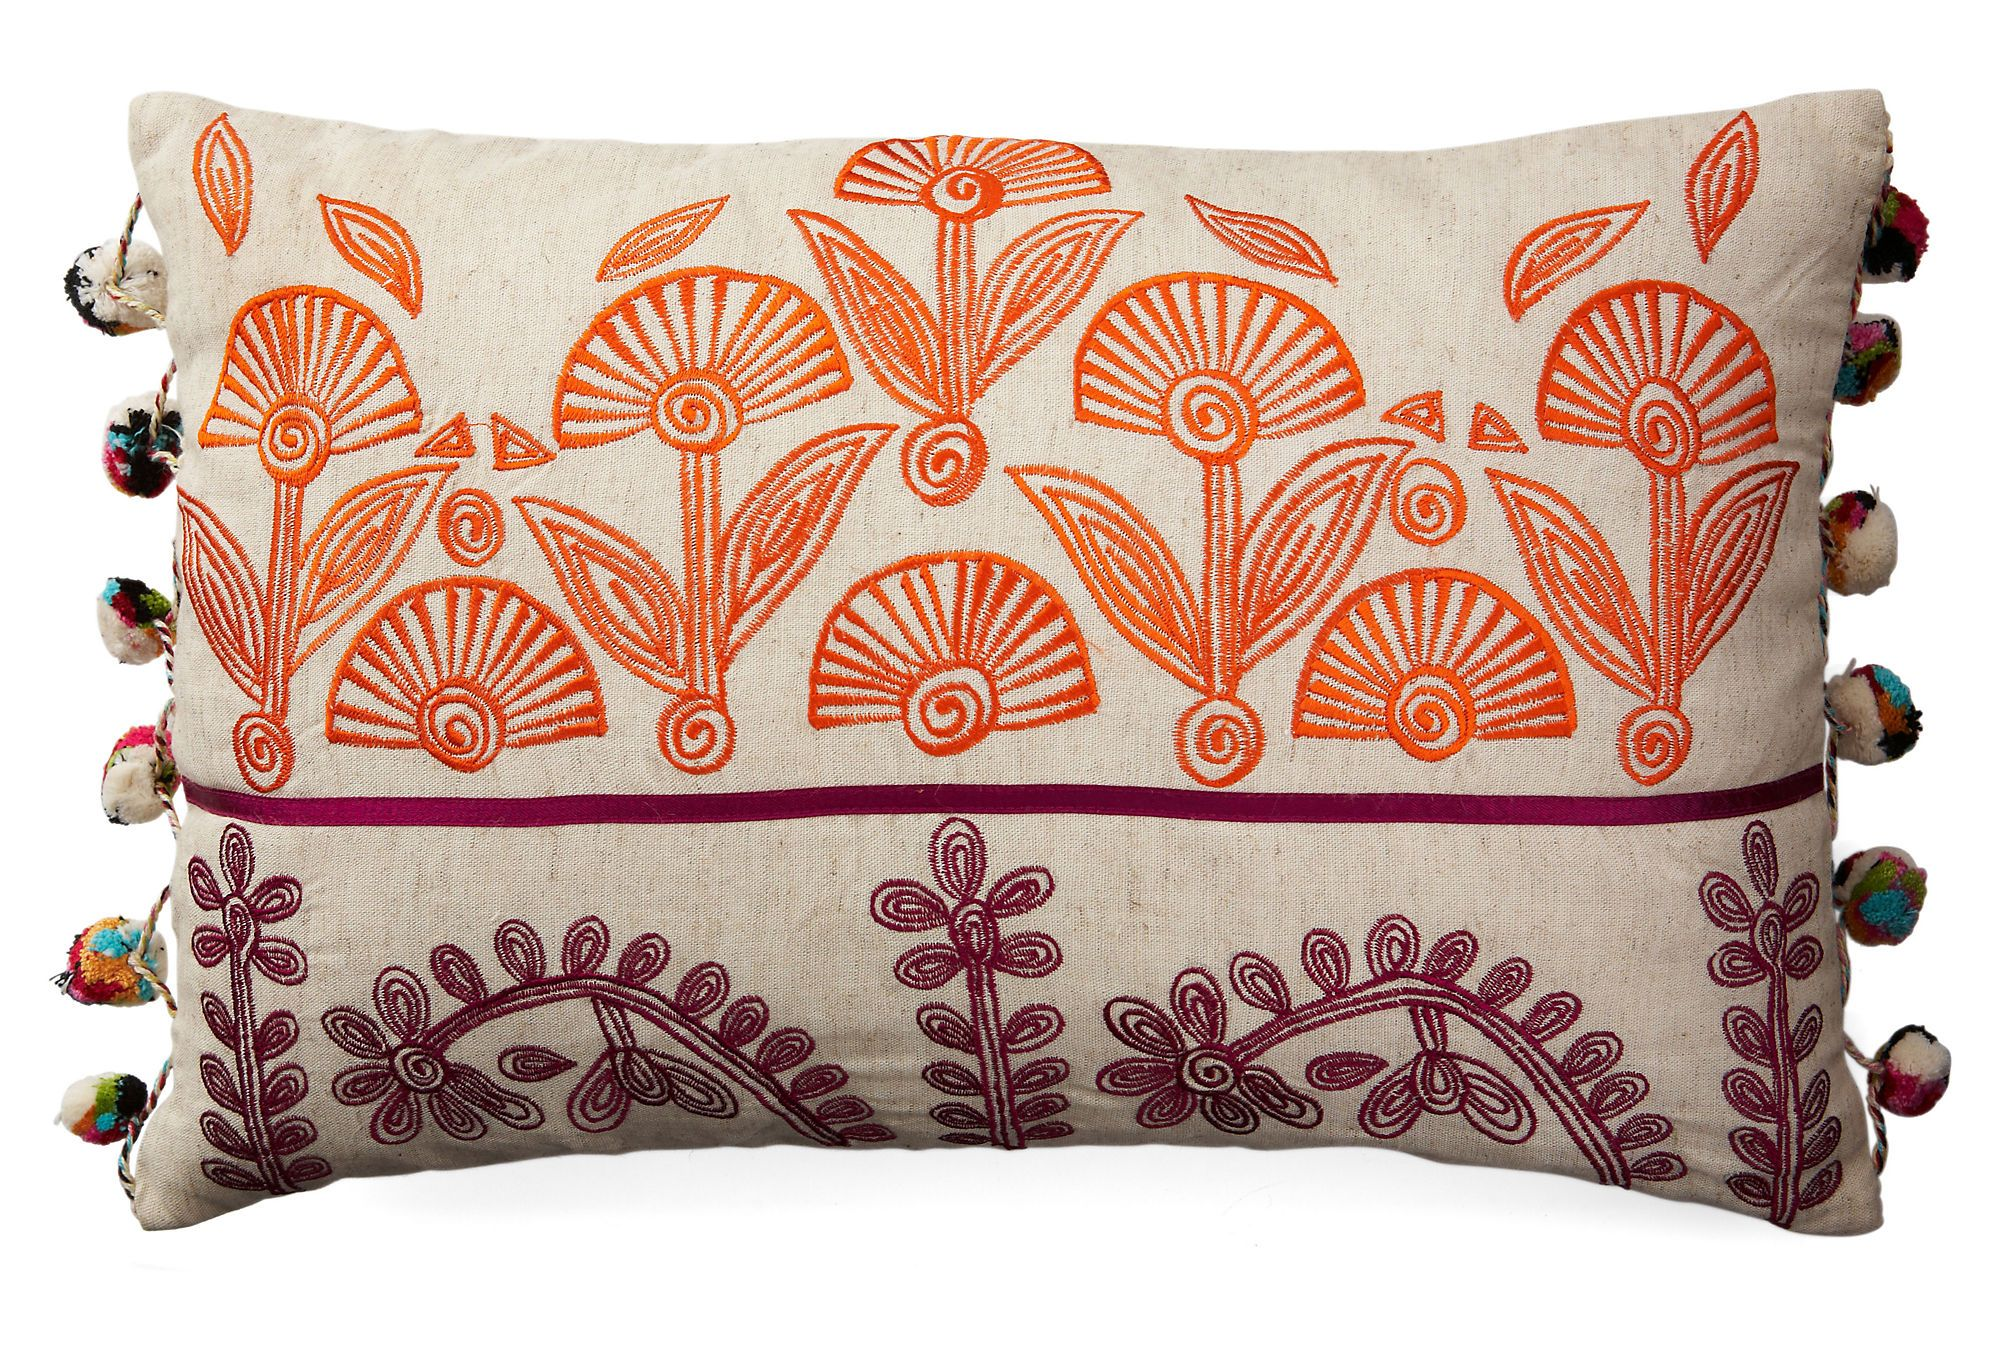 One Kings Lane - Whimsical Accents - Lacee Pom-Pom 12x18 Pillow, Natural